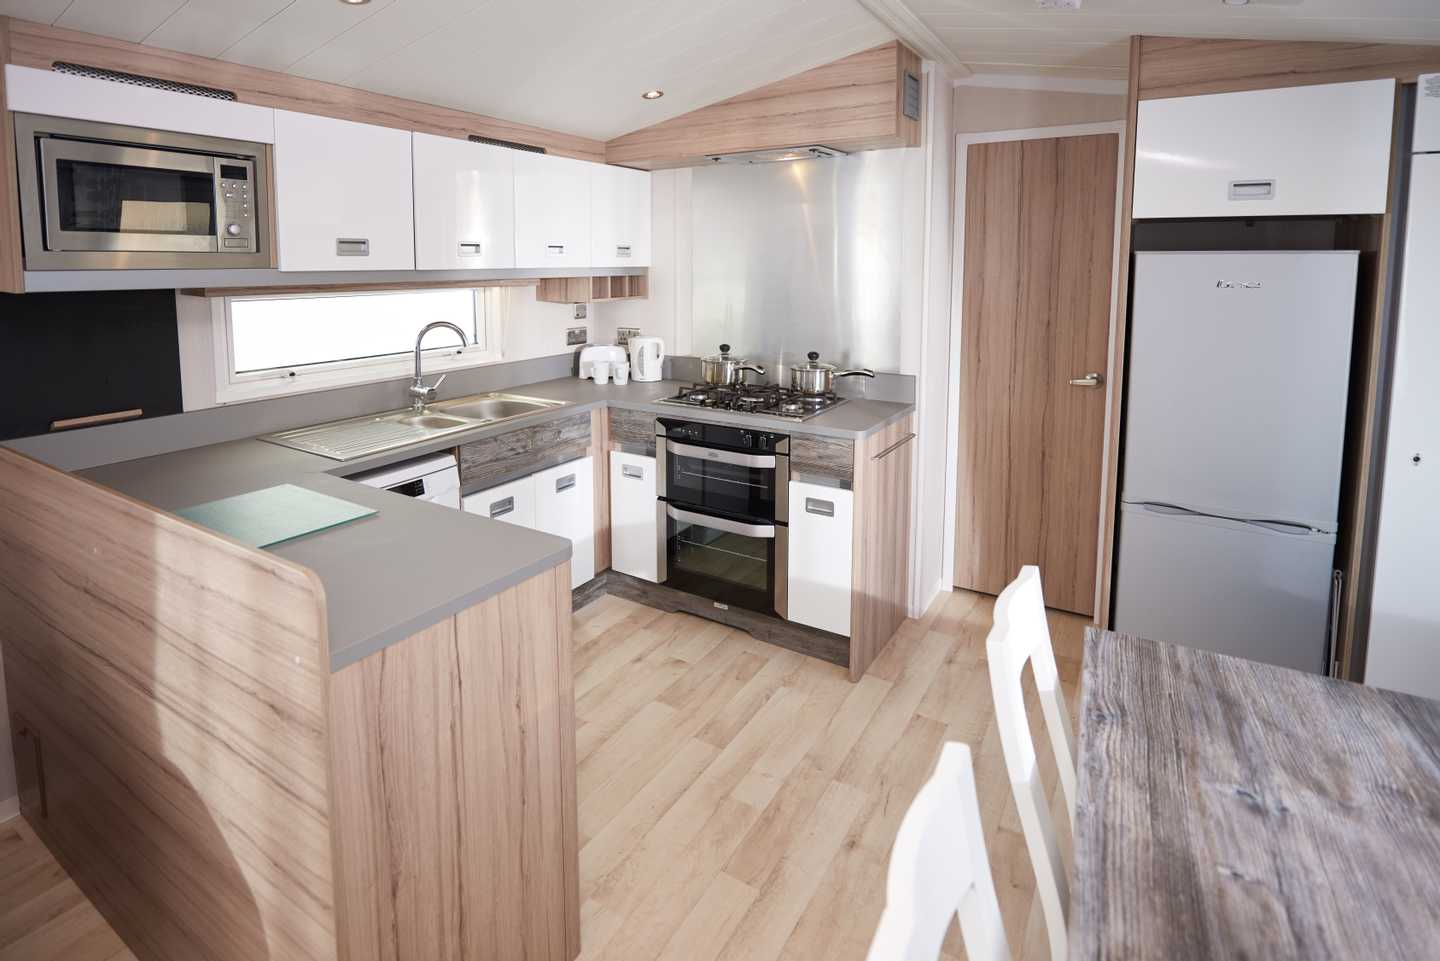 A representation of a Platinum with decking kitchen